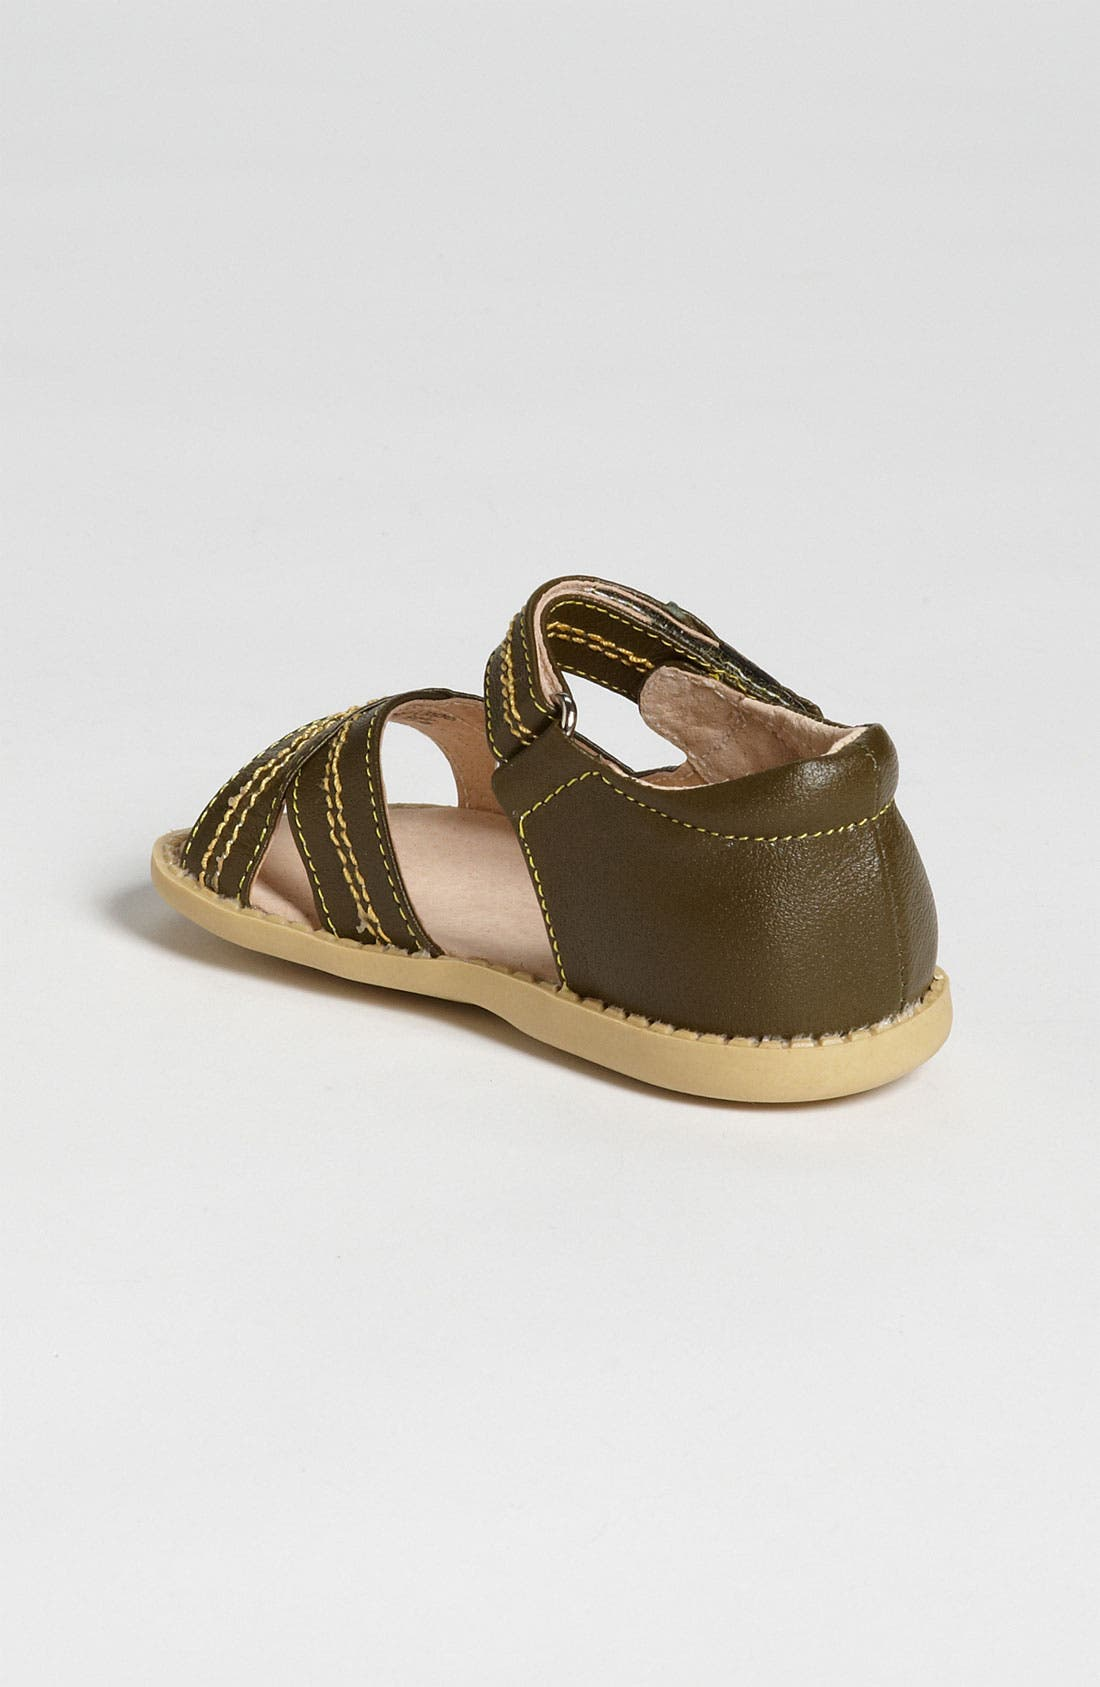 Alternate Image 2  - Livie & Luca 'Boa' Sandal (Baby, Walker & Toddler)